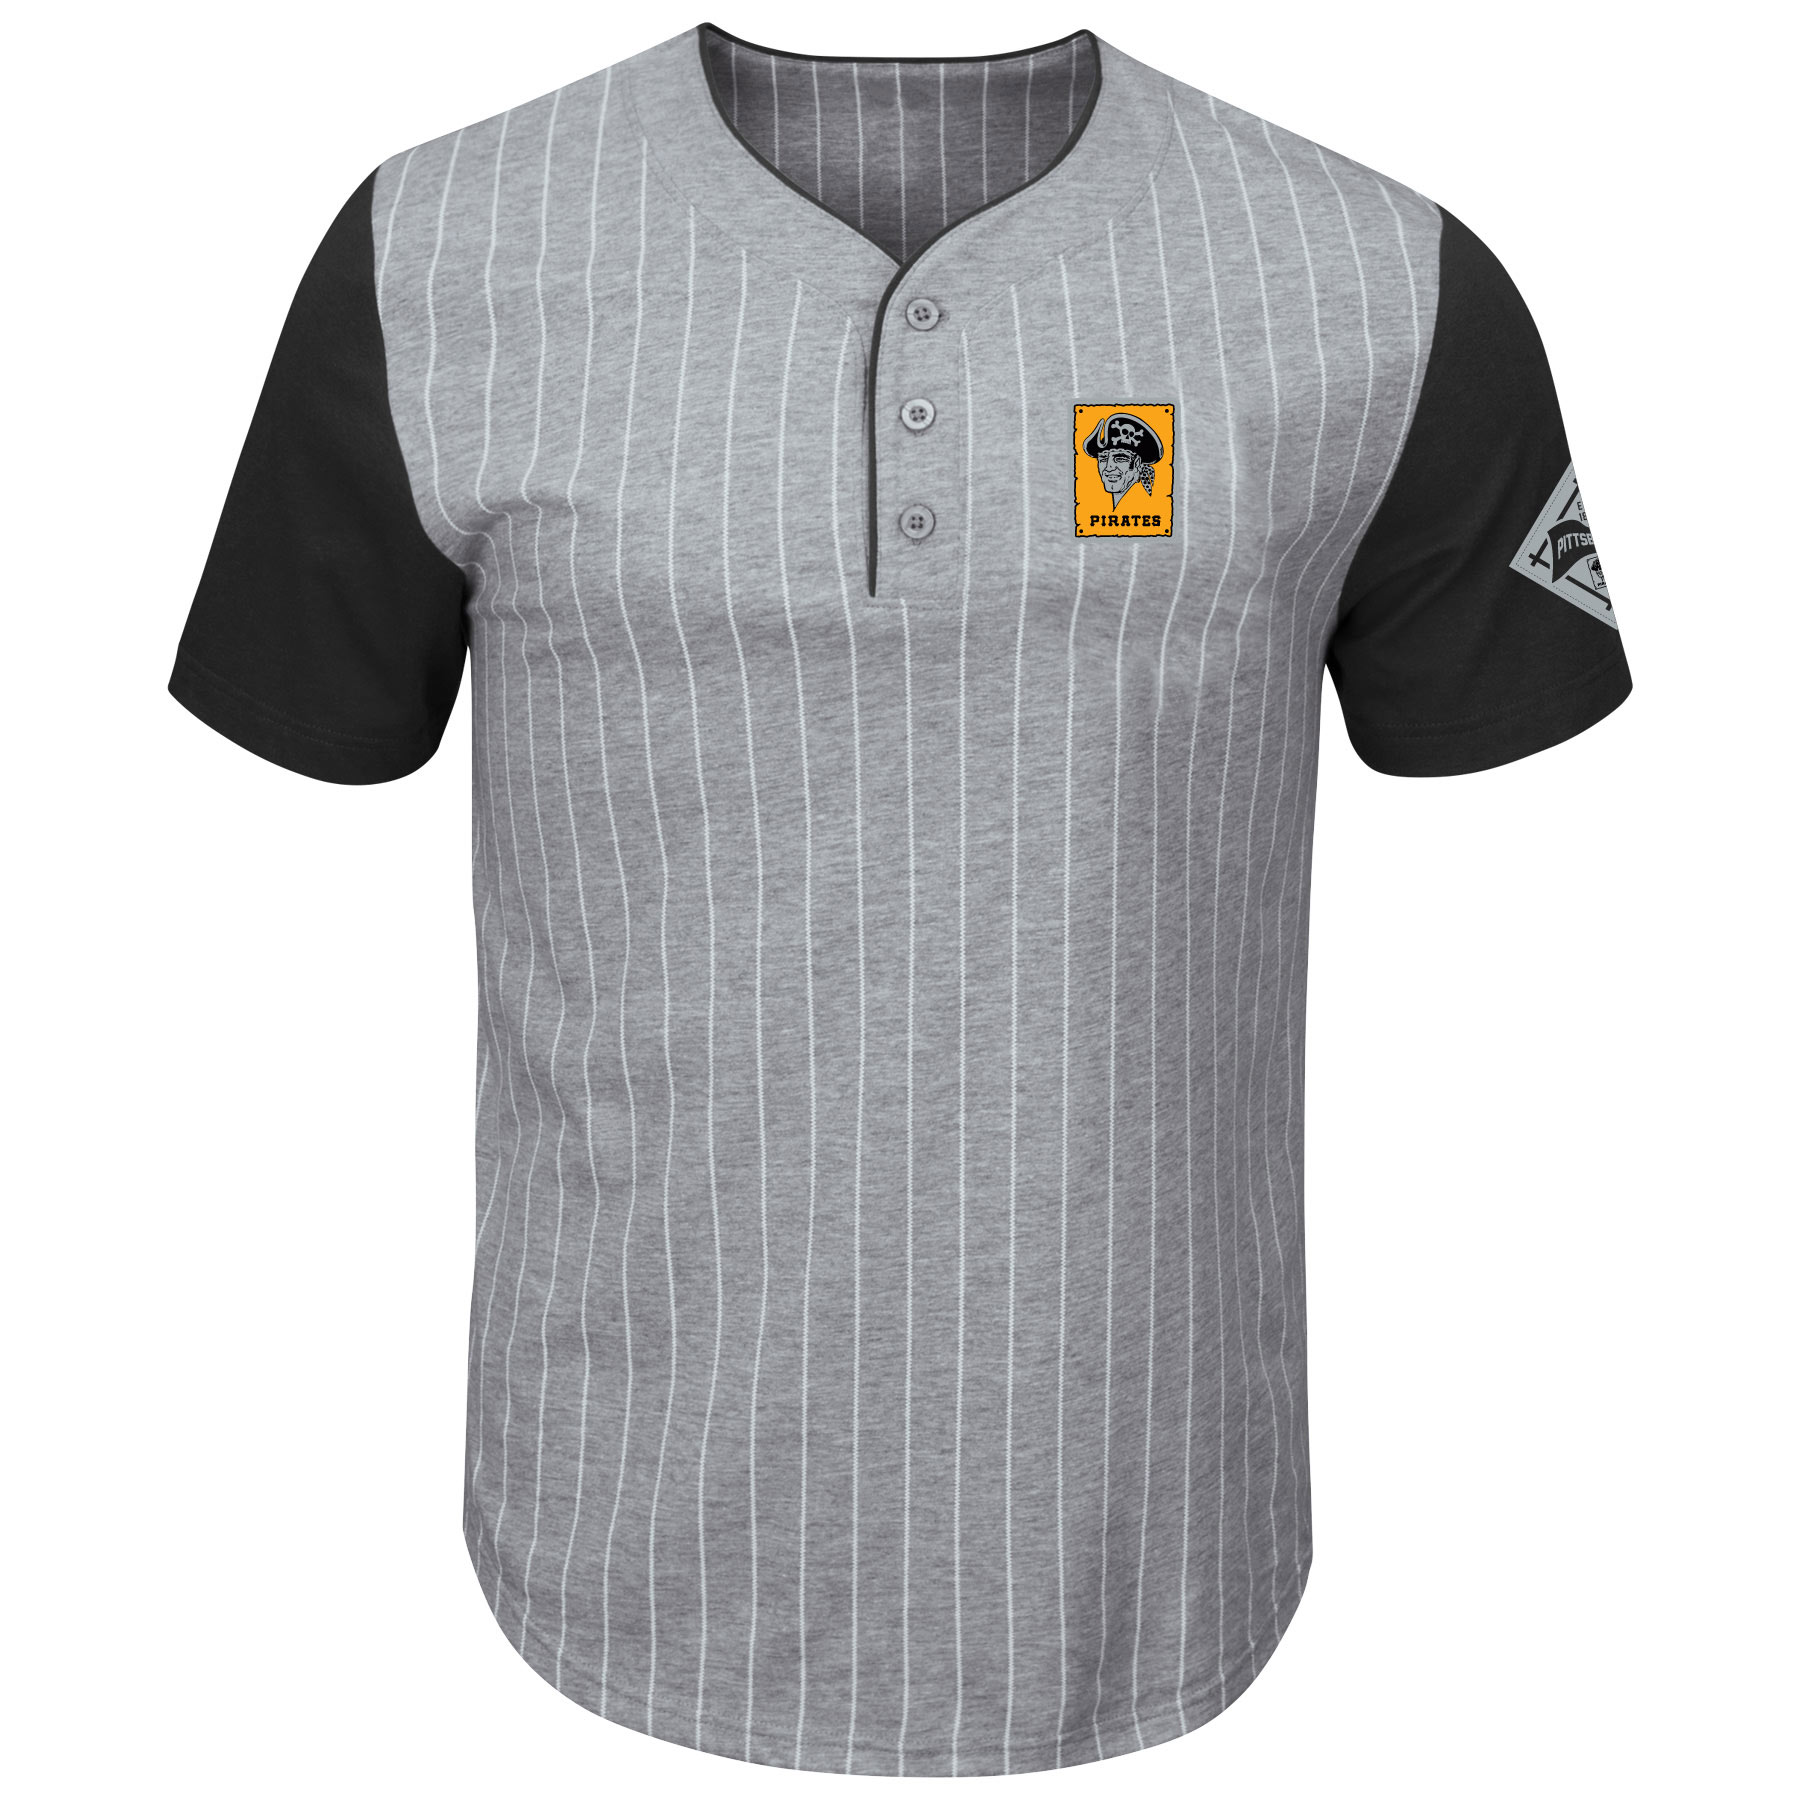 Pittsburgh Pirates Majestic Cooperstown Collection Pinstripe Henley T-Shirt - Gray/Black